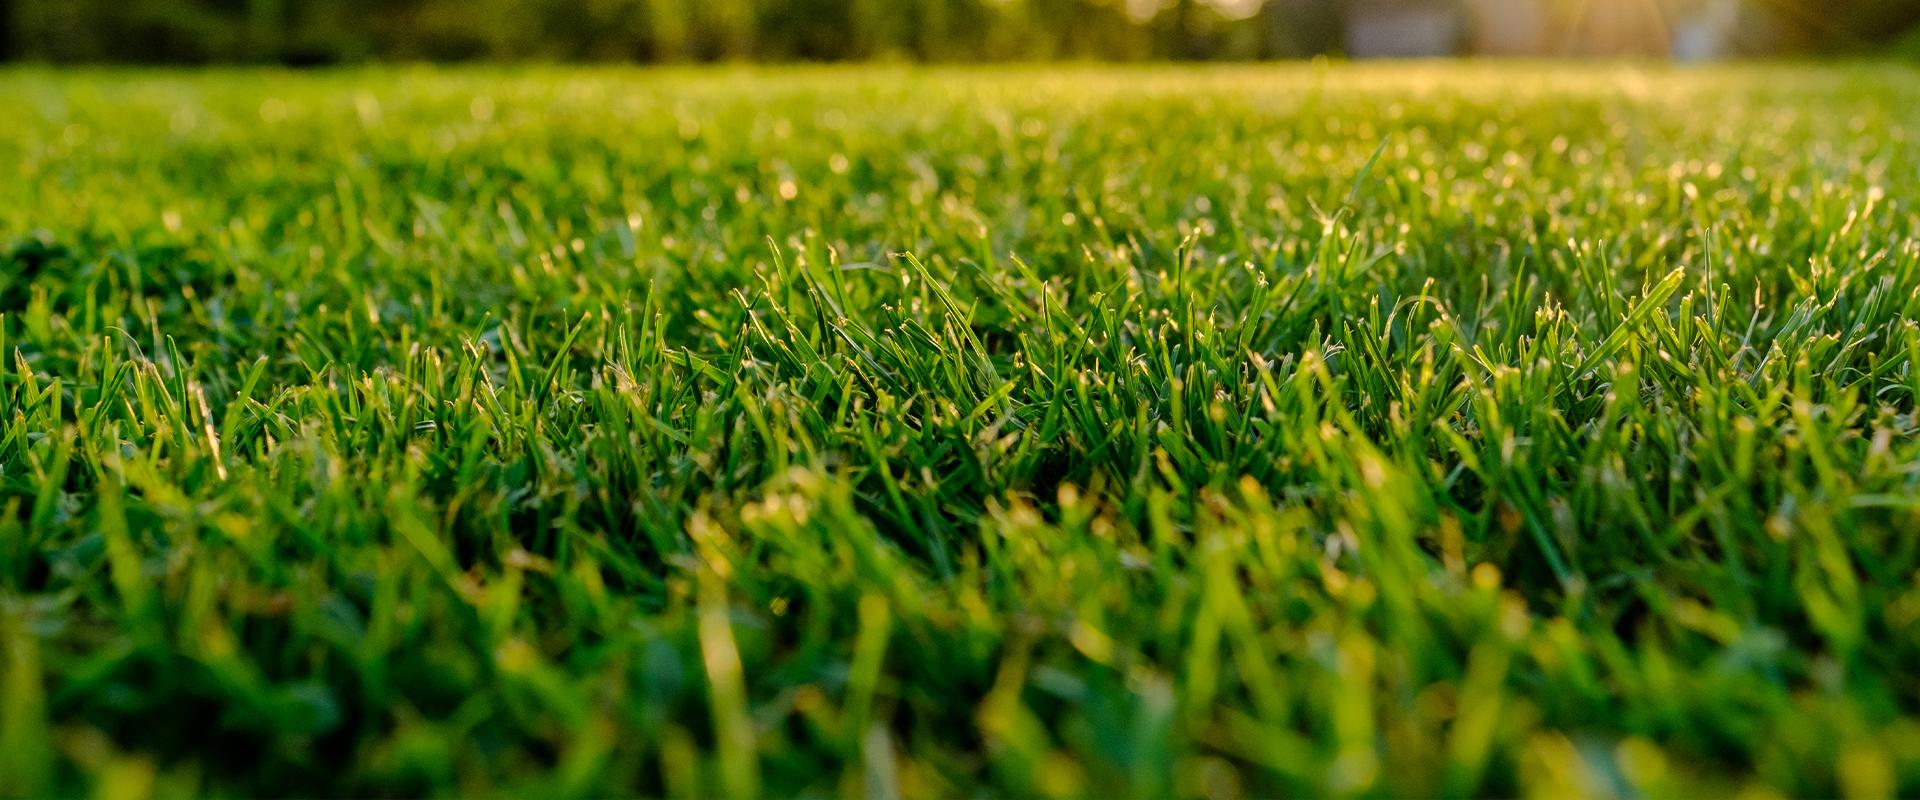 close up of grass in front lawn